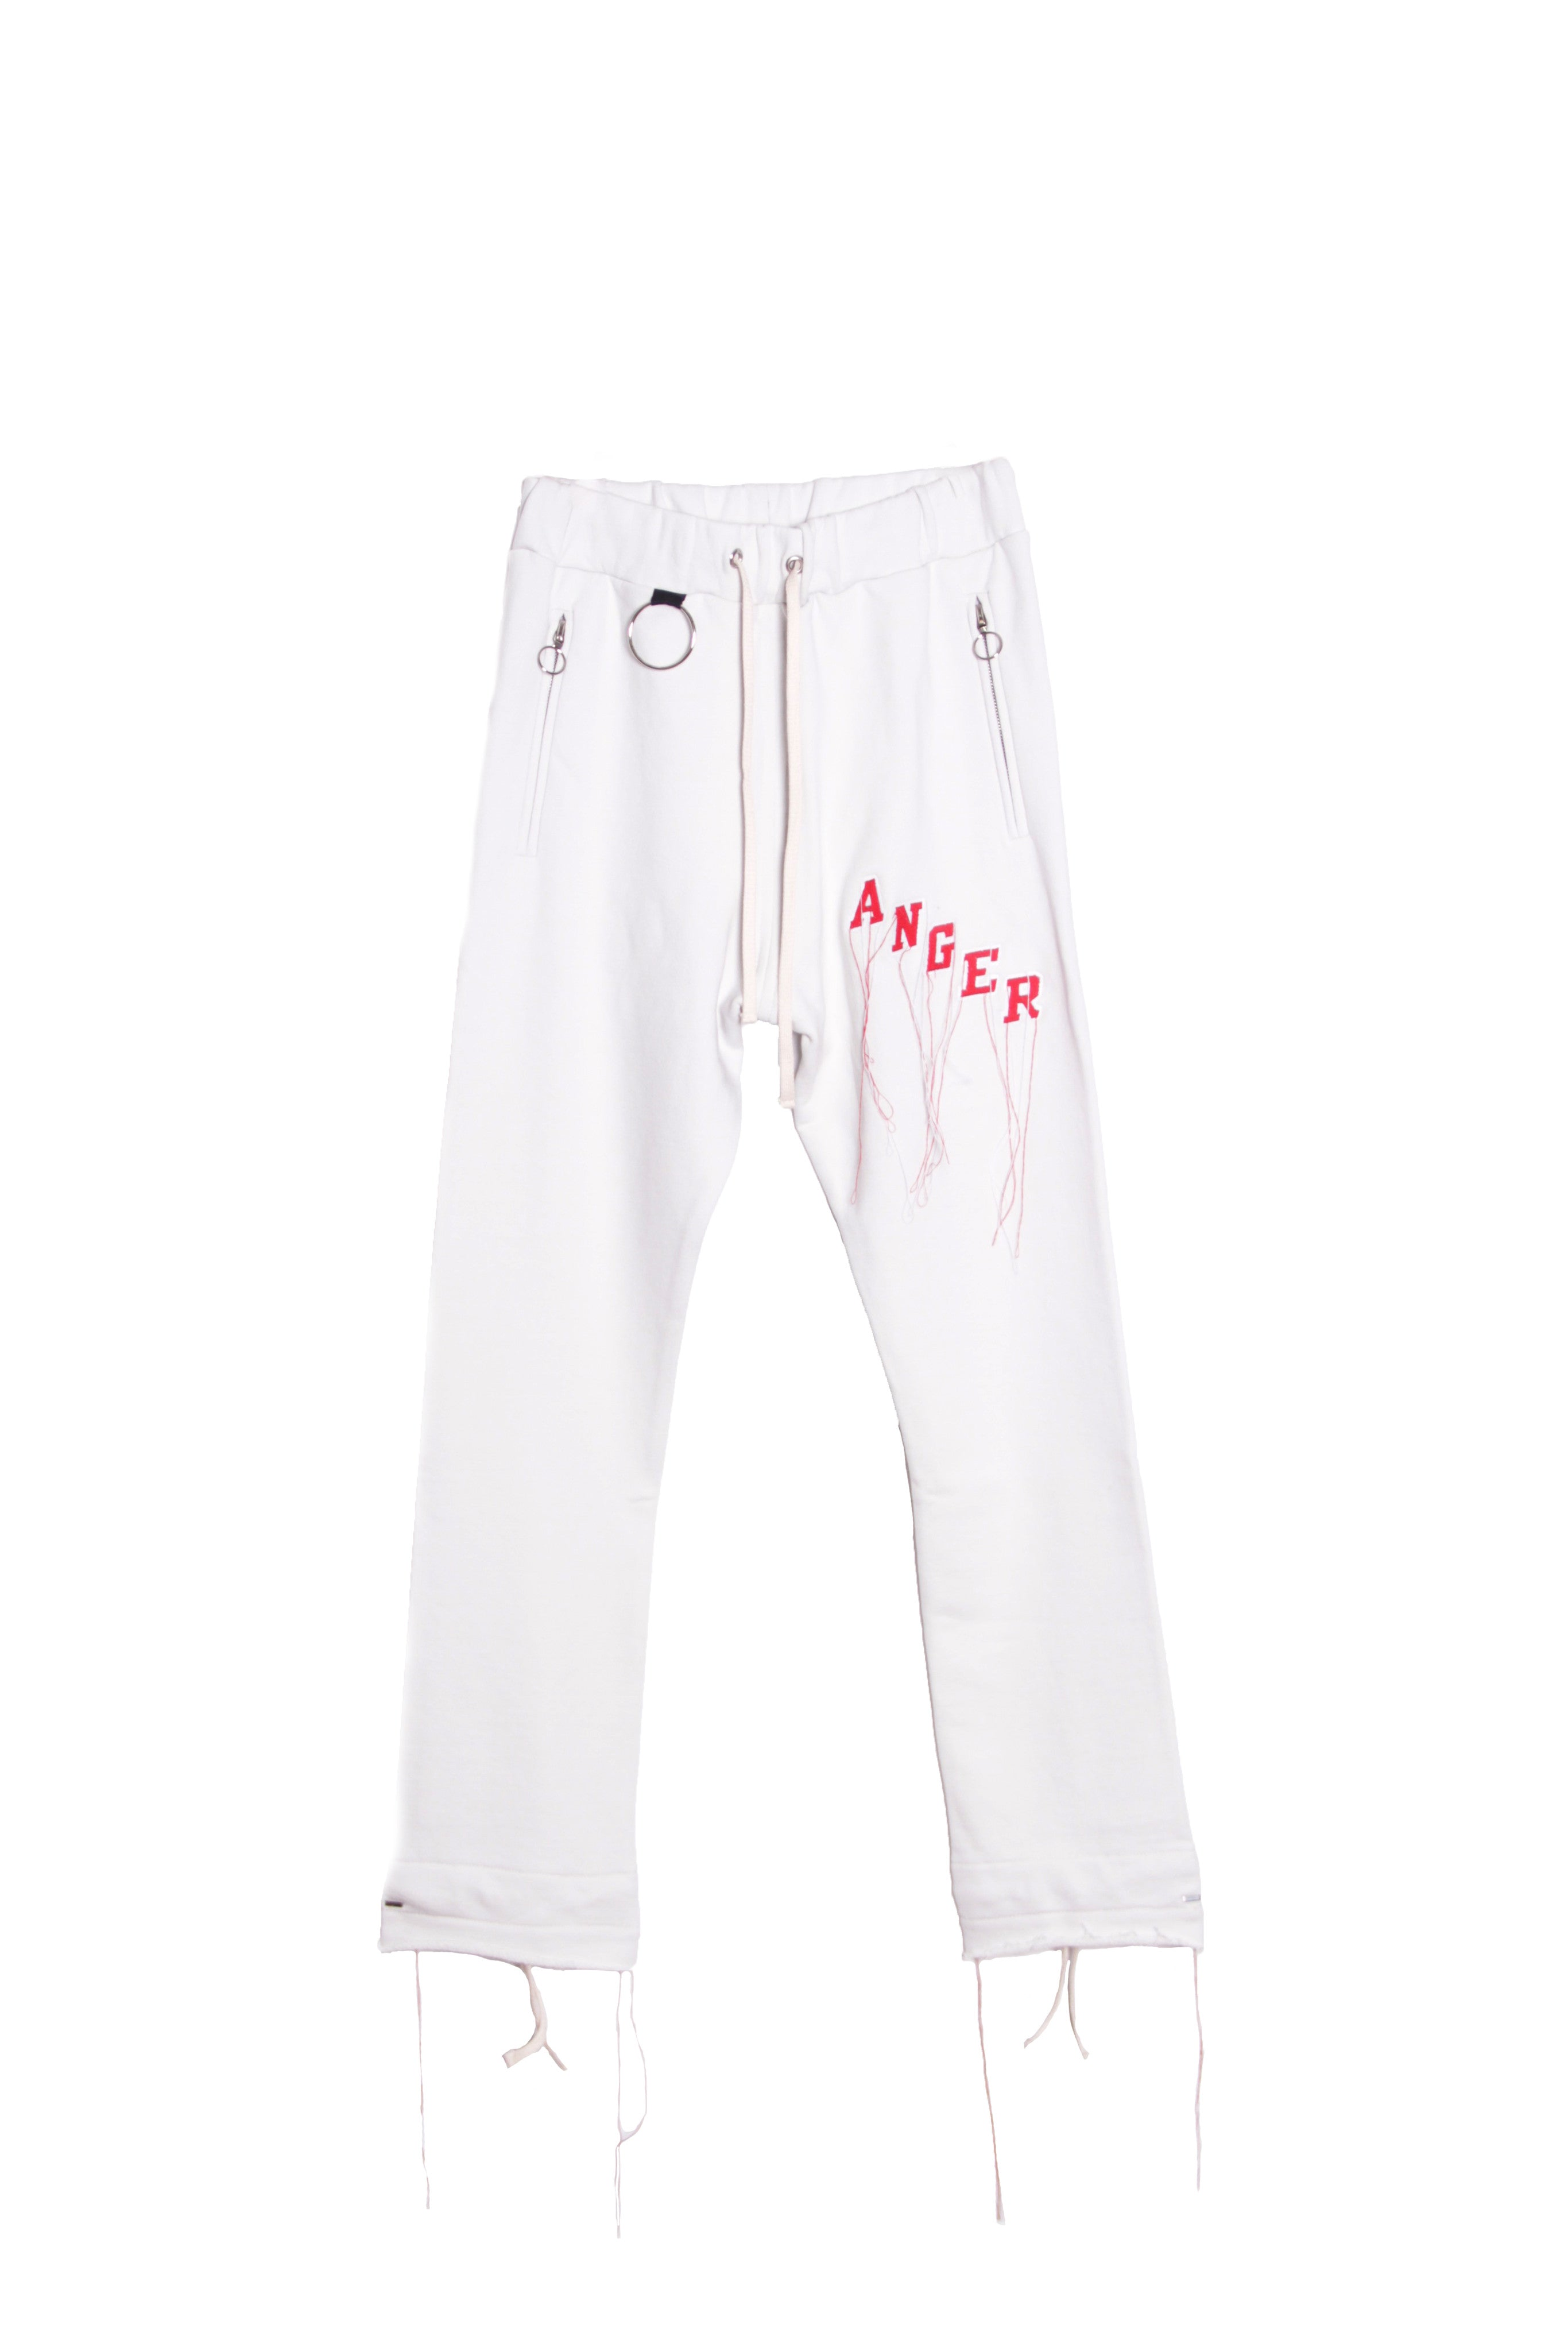 ANGER SWEATPANT